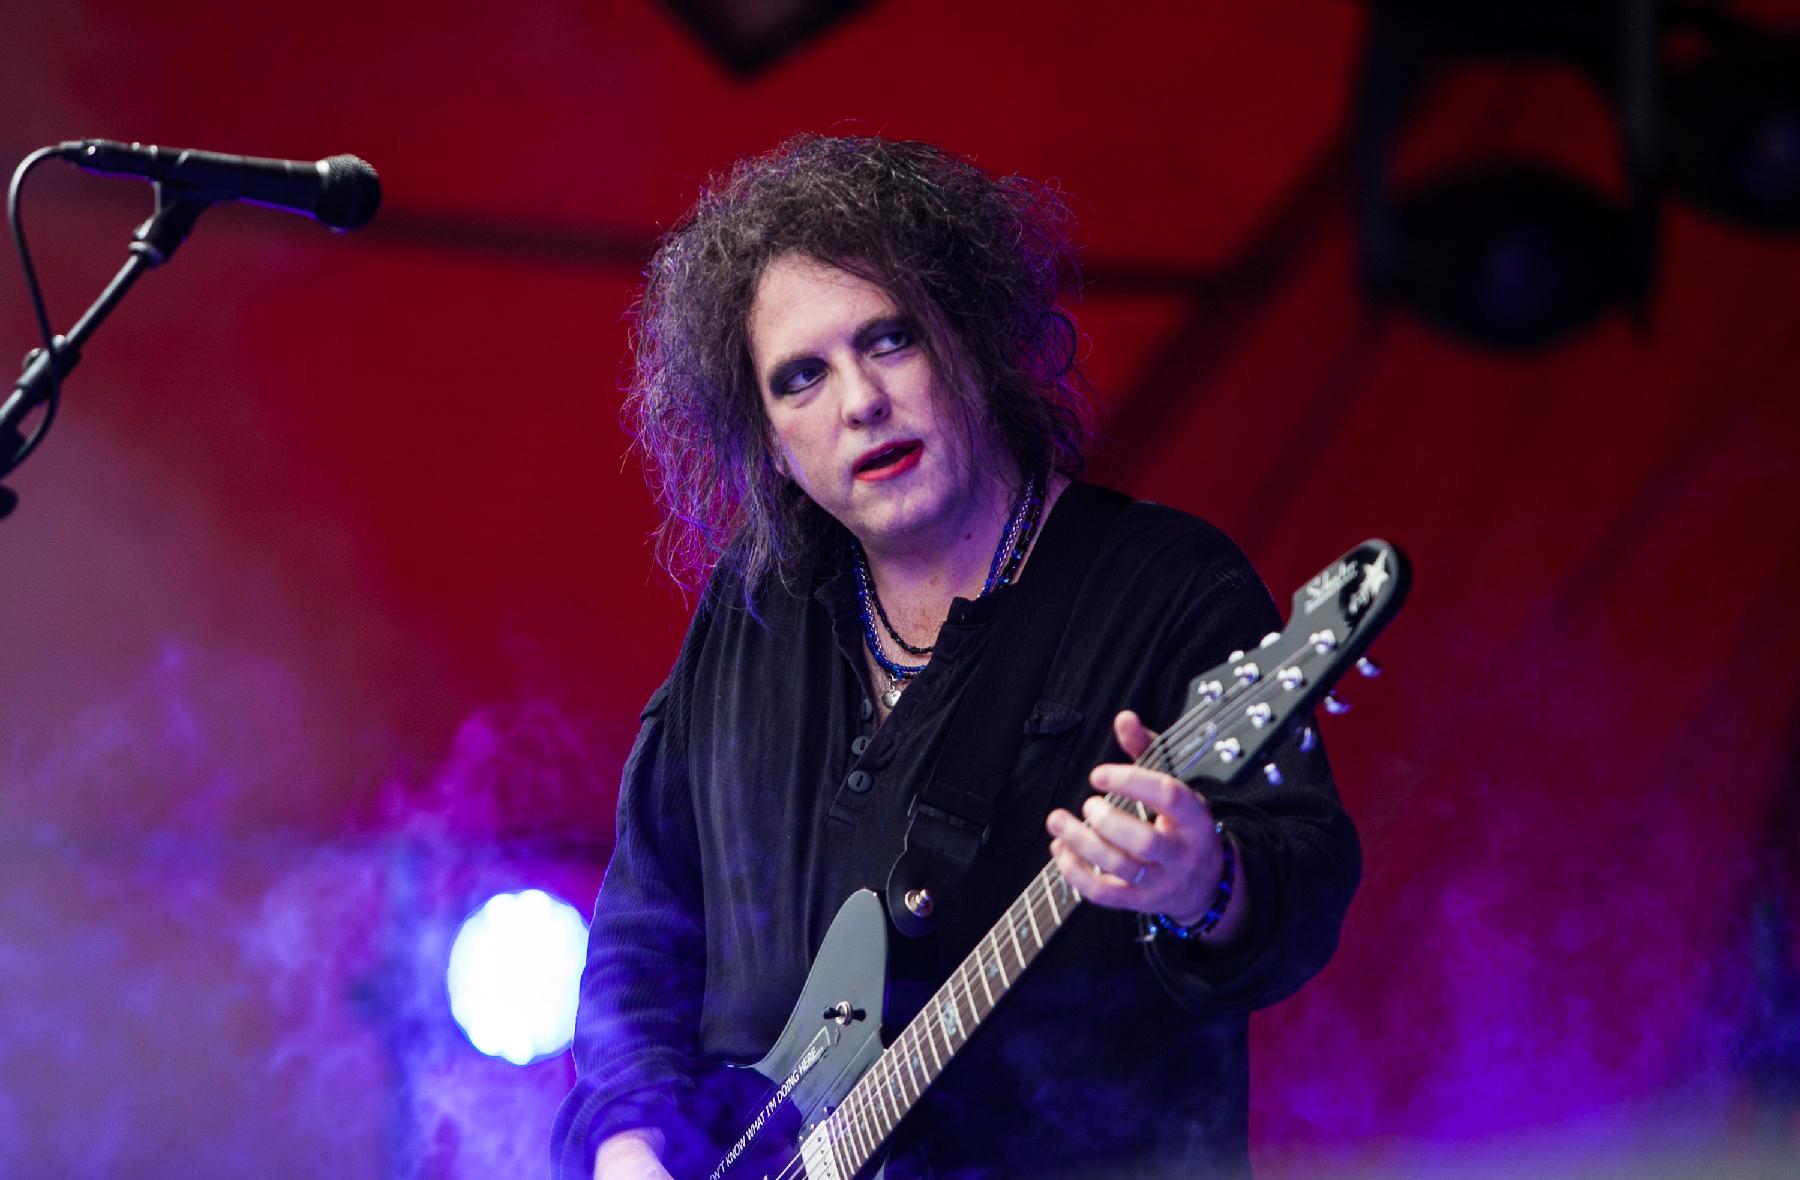 Robert Smith Explains the Cure's Forthcoming '4:14 Scream' Album